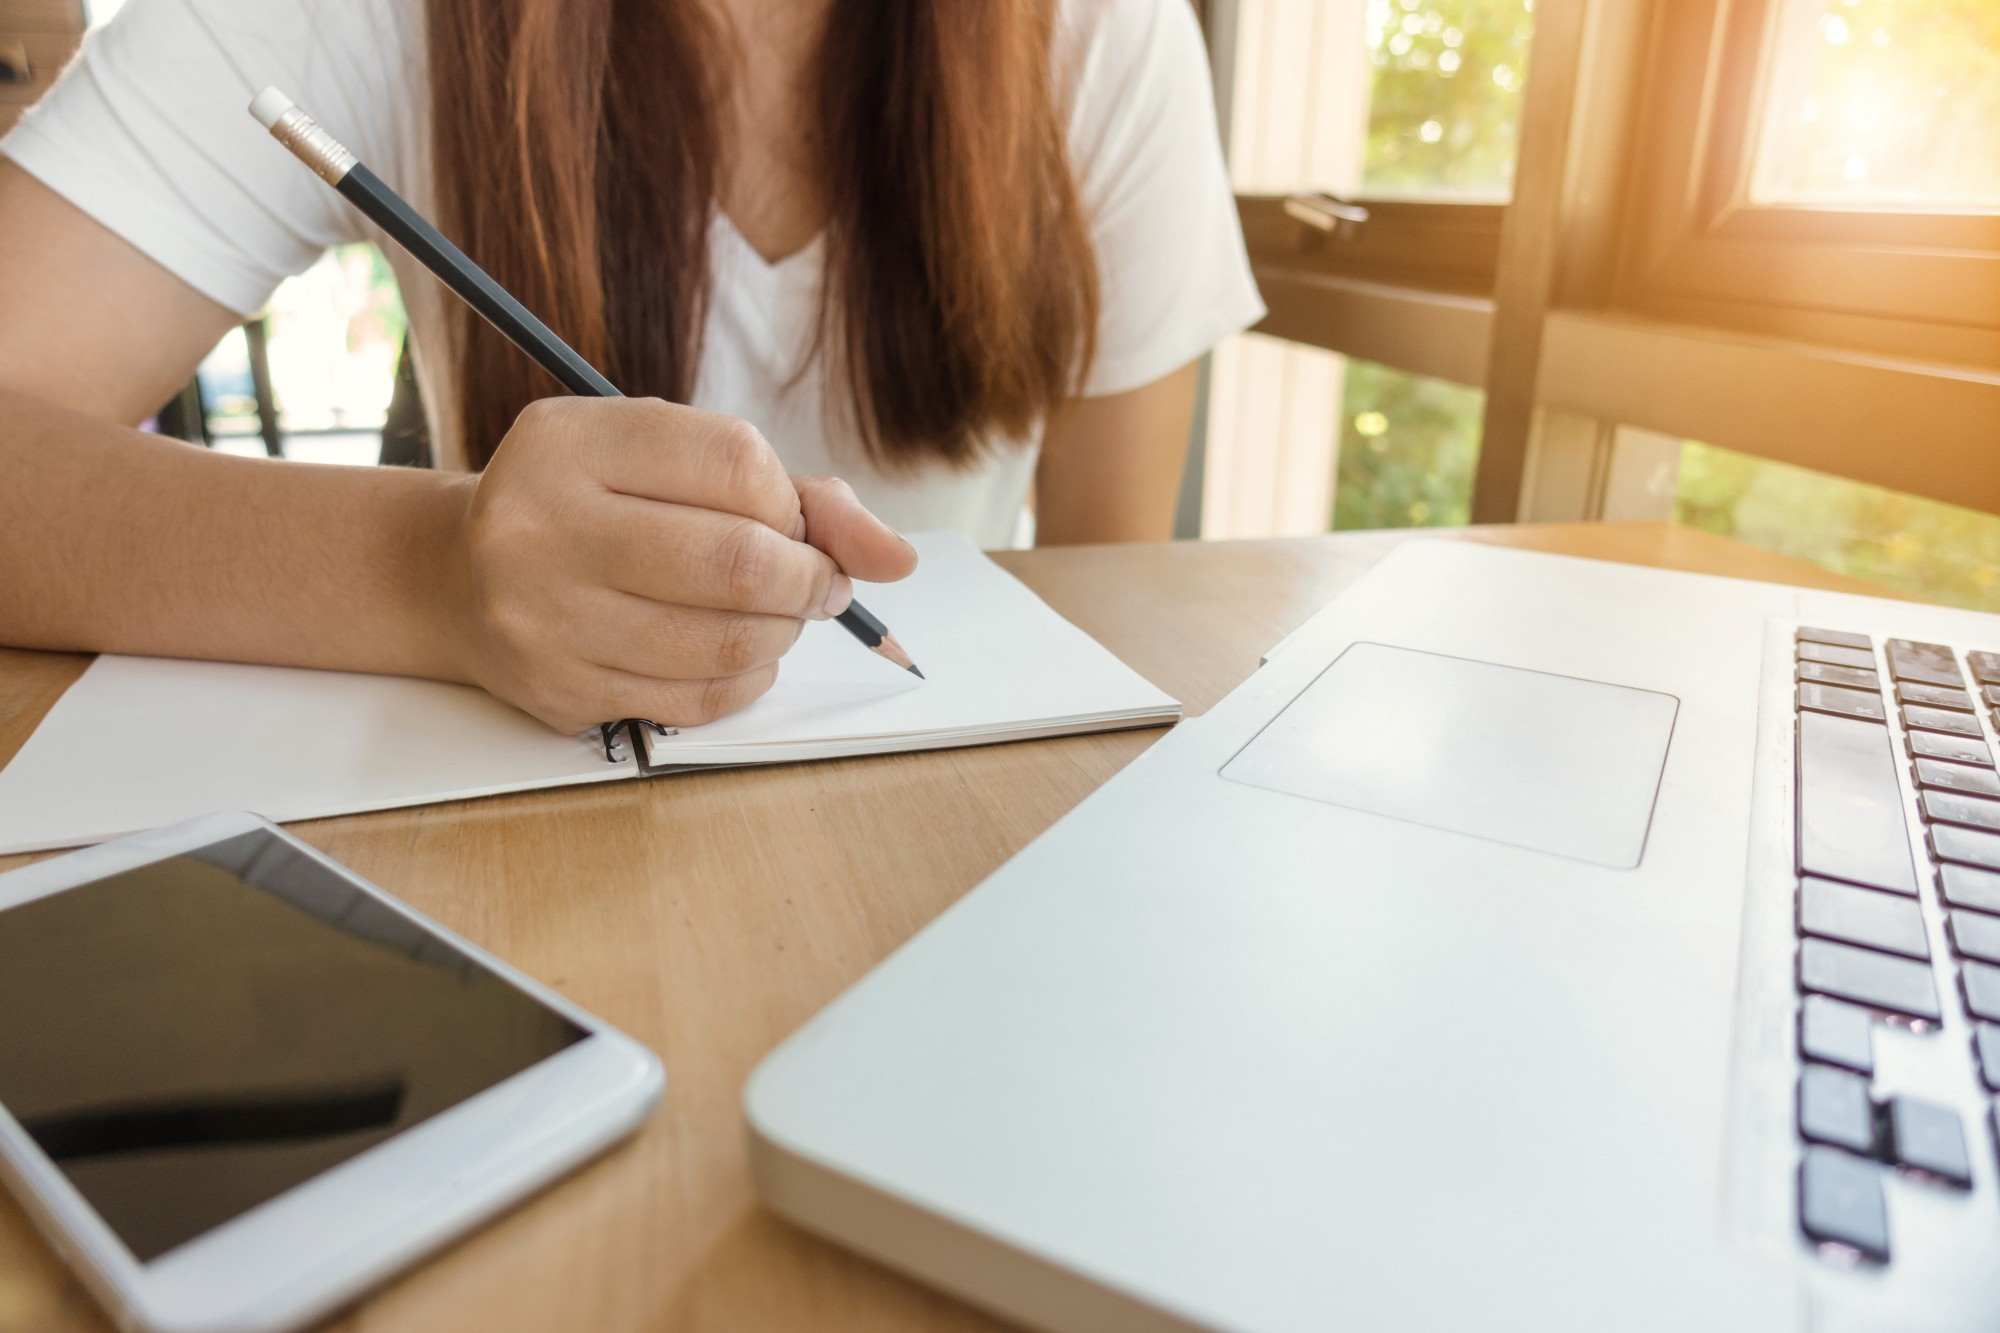 Woman about to write on a paper notebook